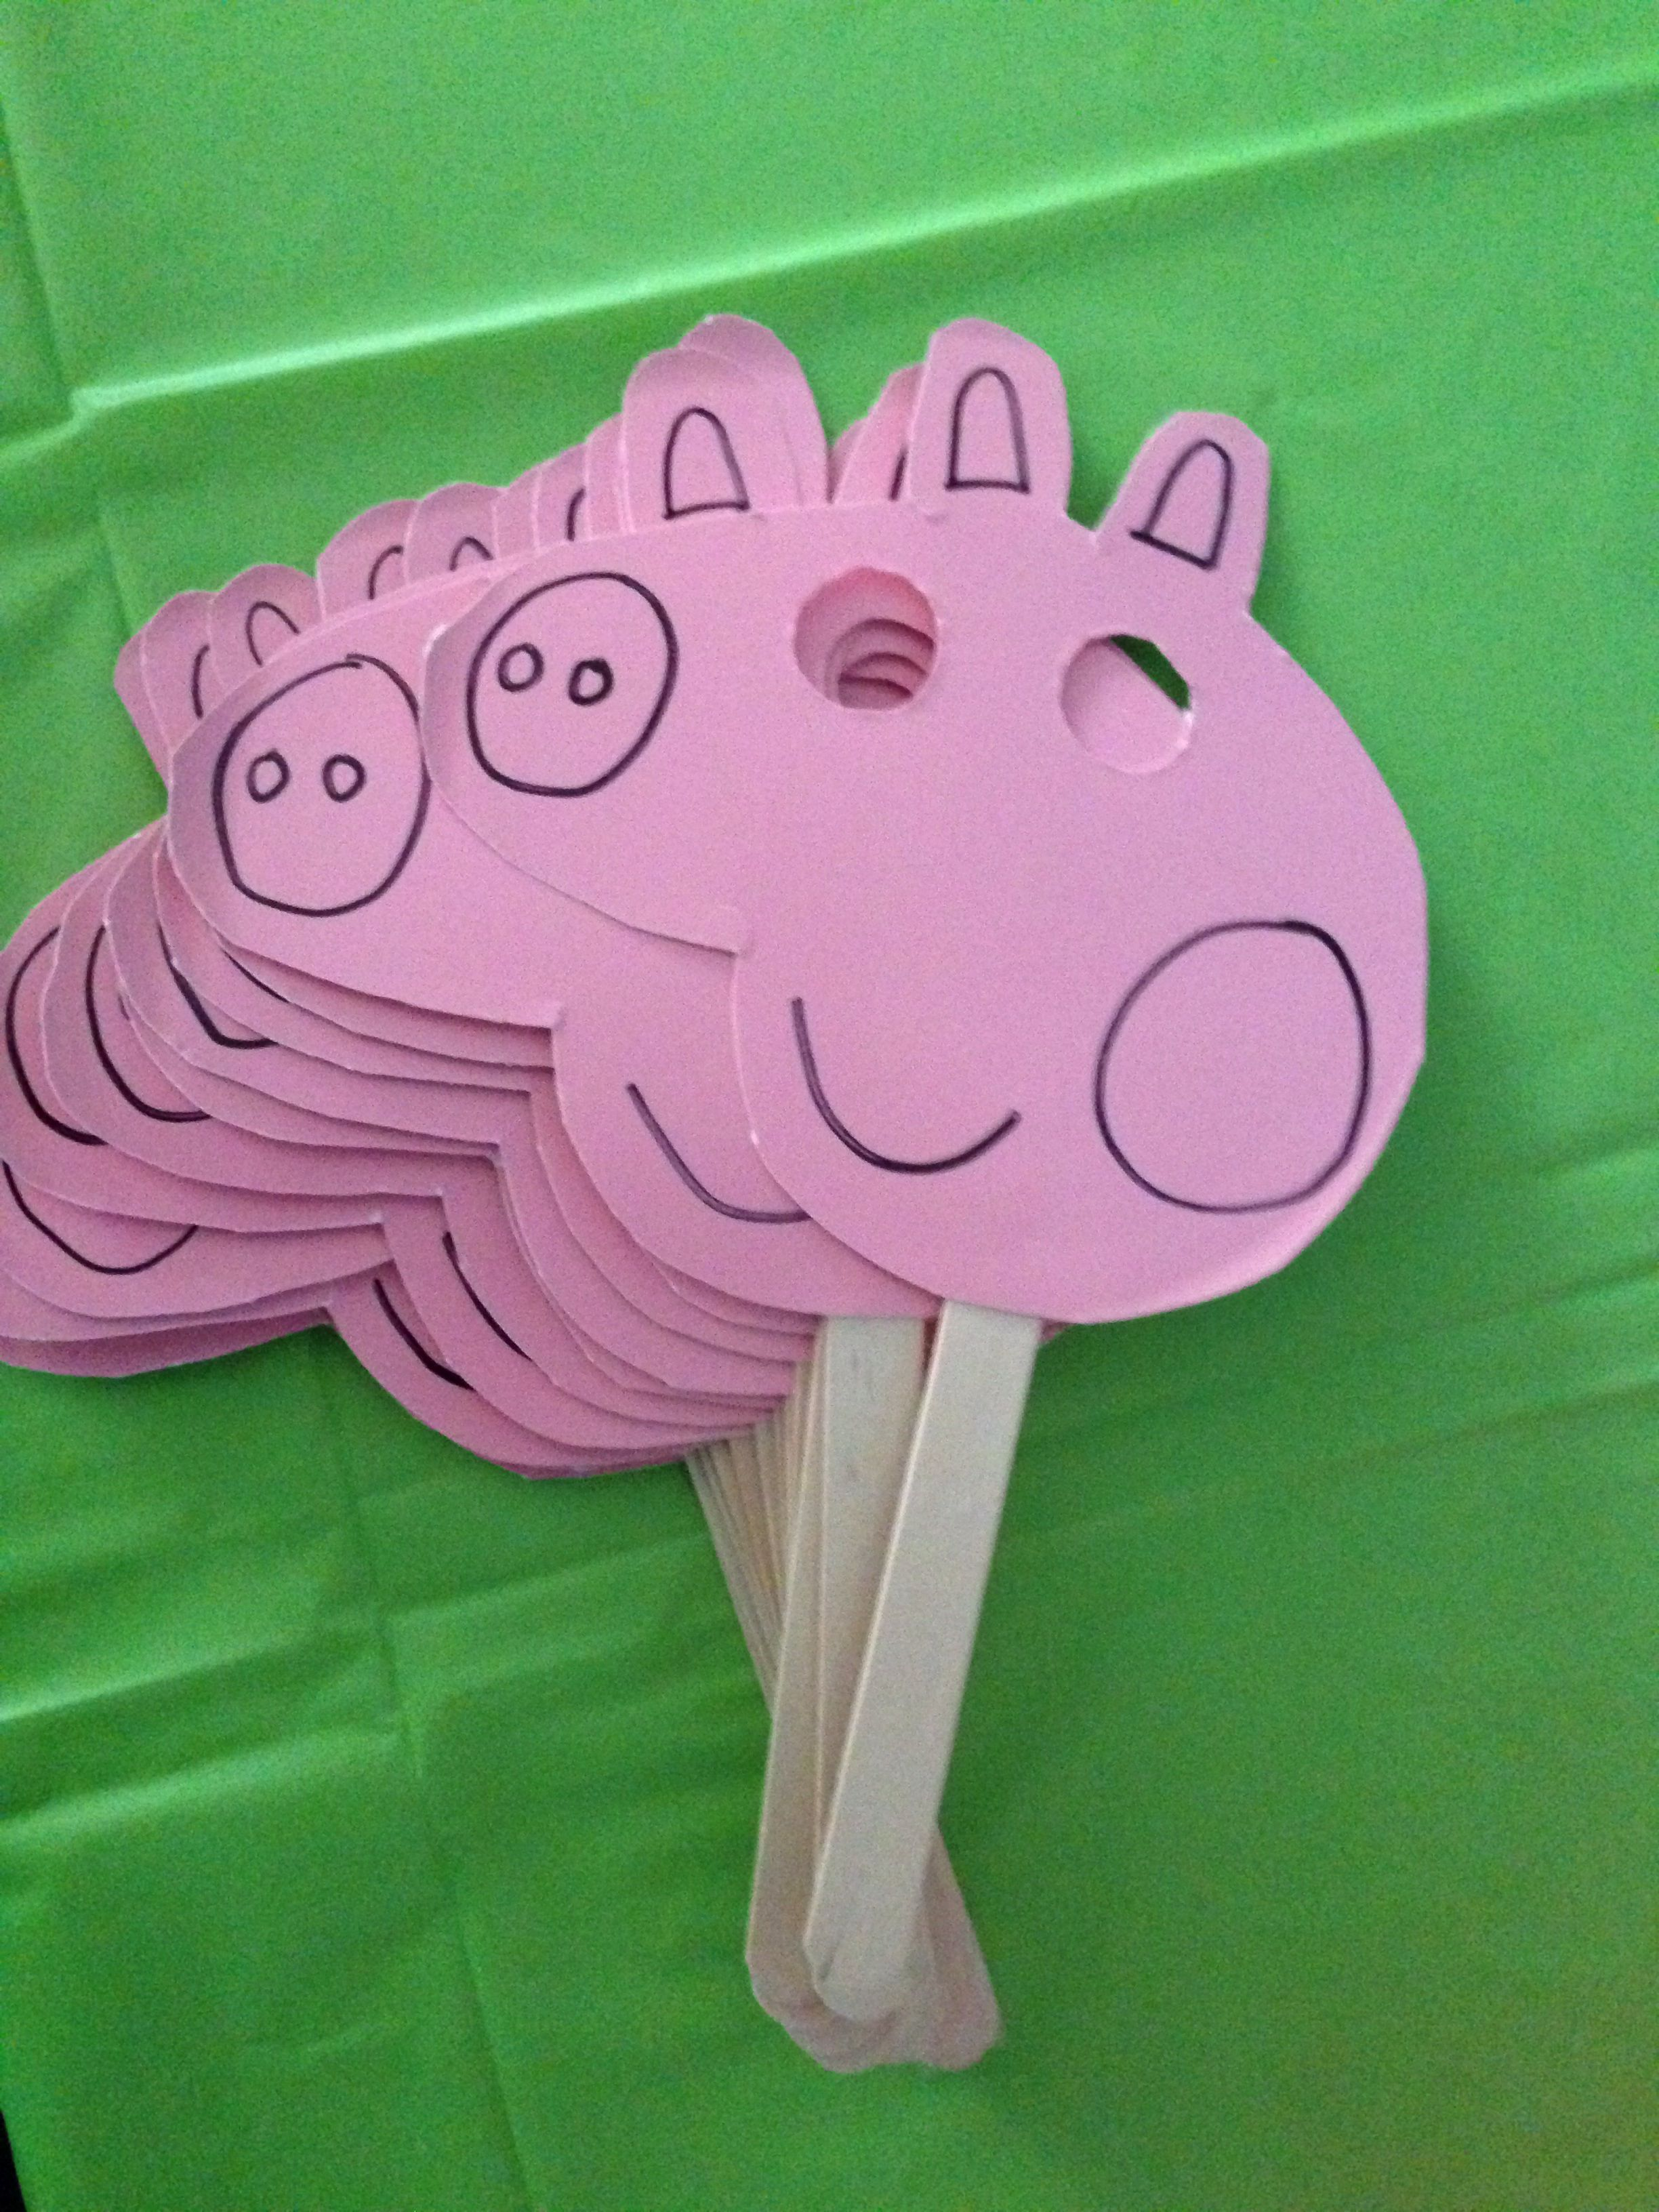 Pin By Ashley Daly On Peppa Pig Party Peppa Pig Birthday Party Peppa Pig Birthday Party Decorations Peppa Pig Birthday